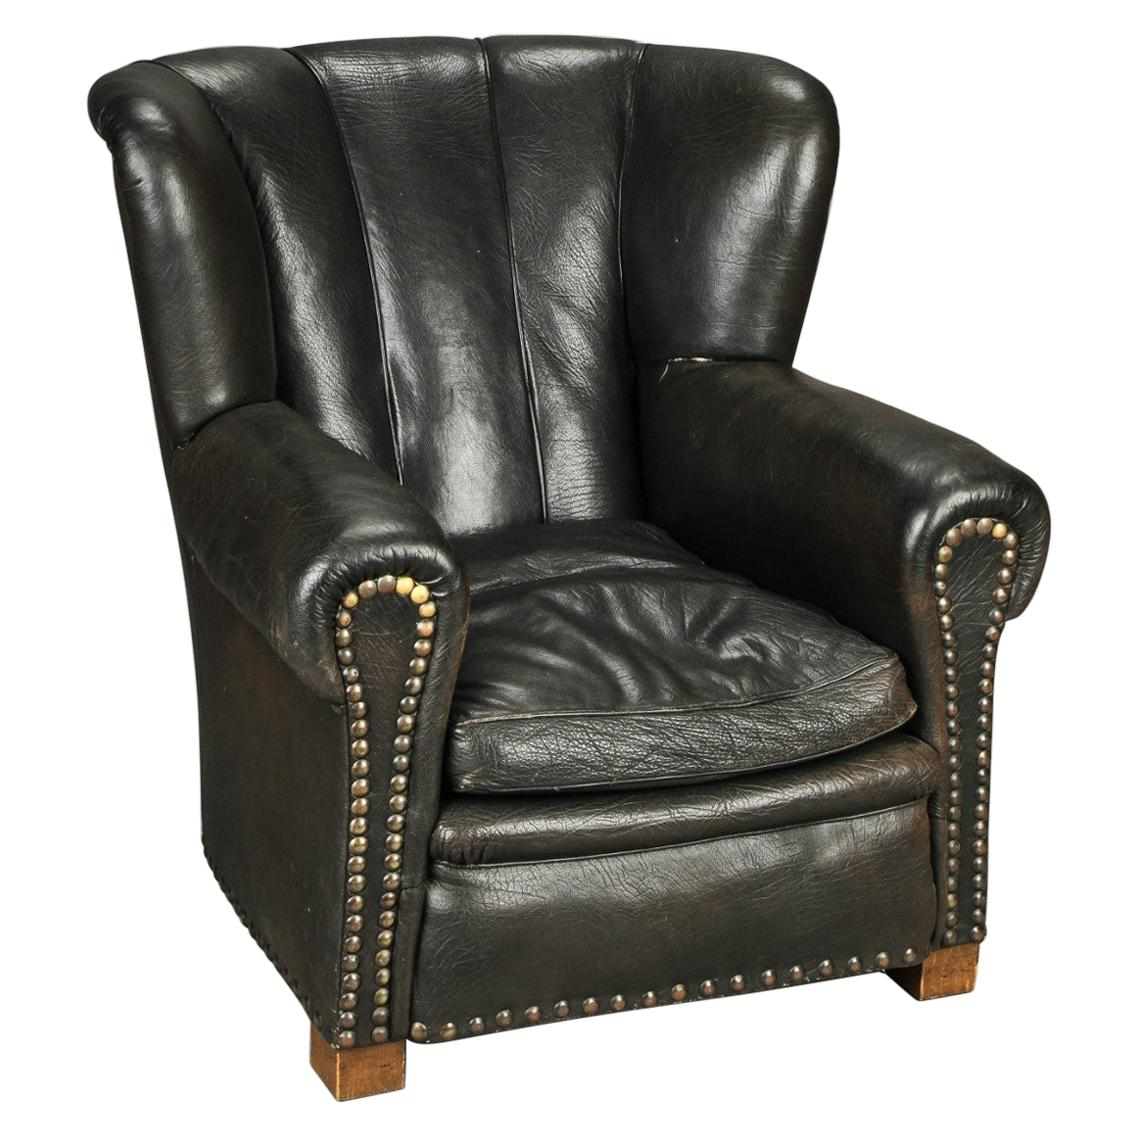 Fritz Hansen Attributed 1940s Danish Channel Back Lounge Chair in Black Leather